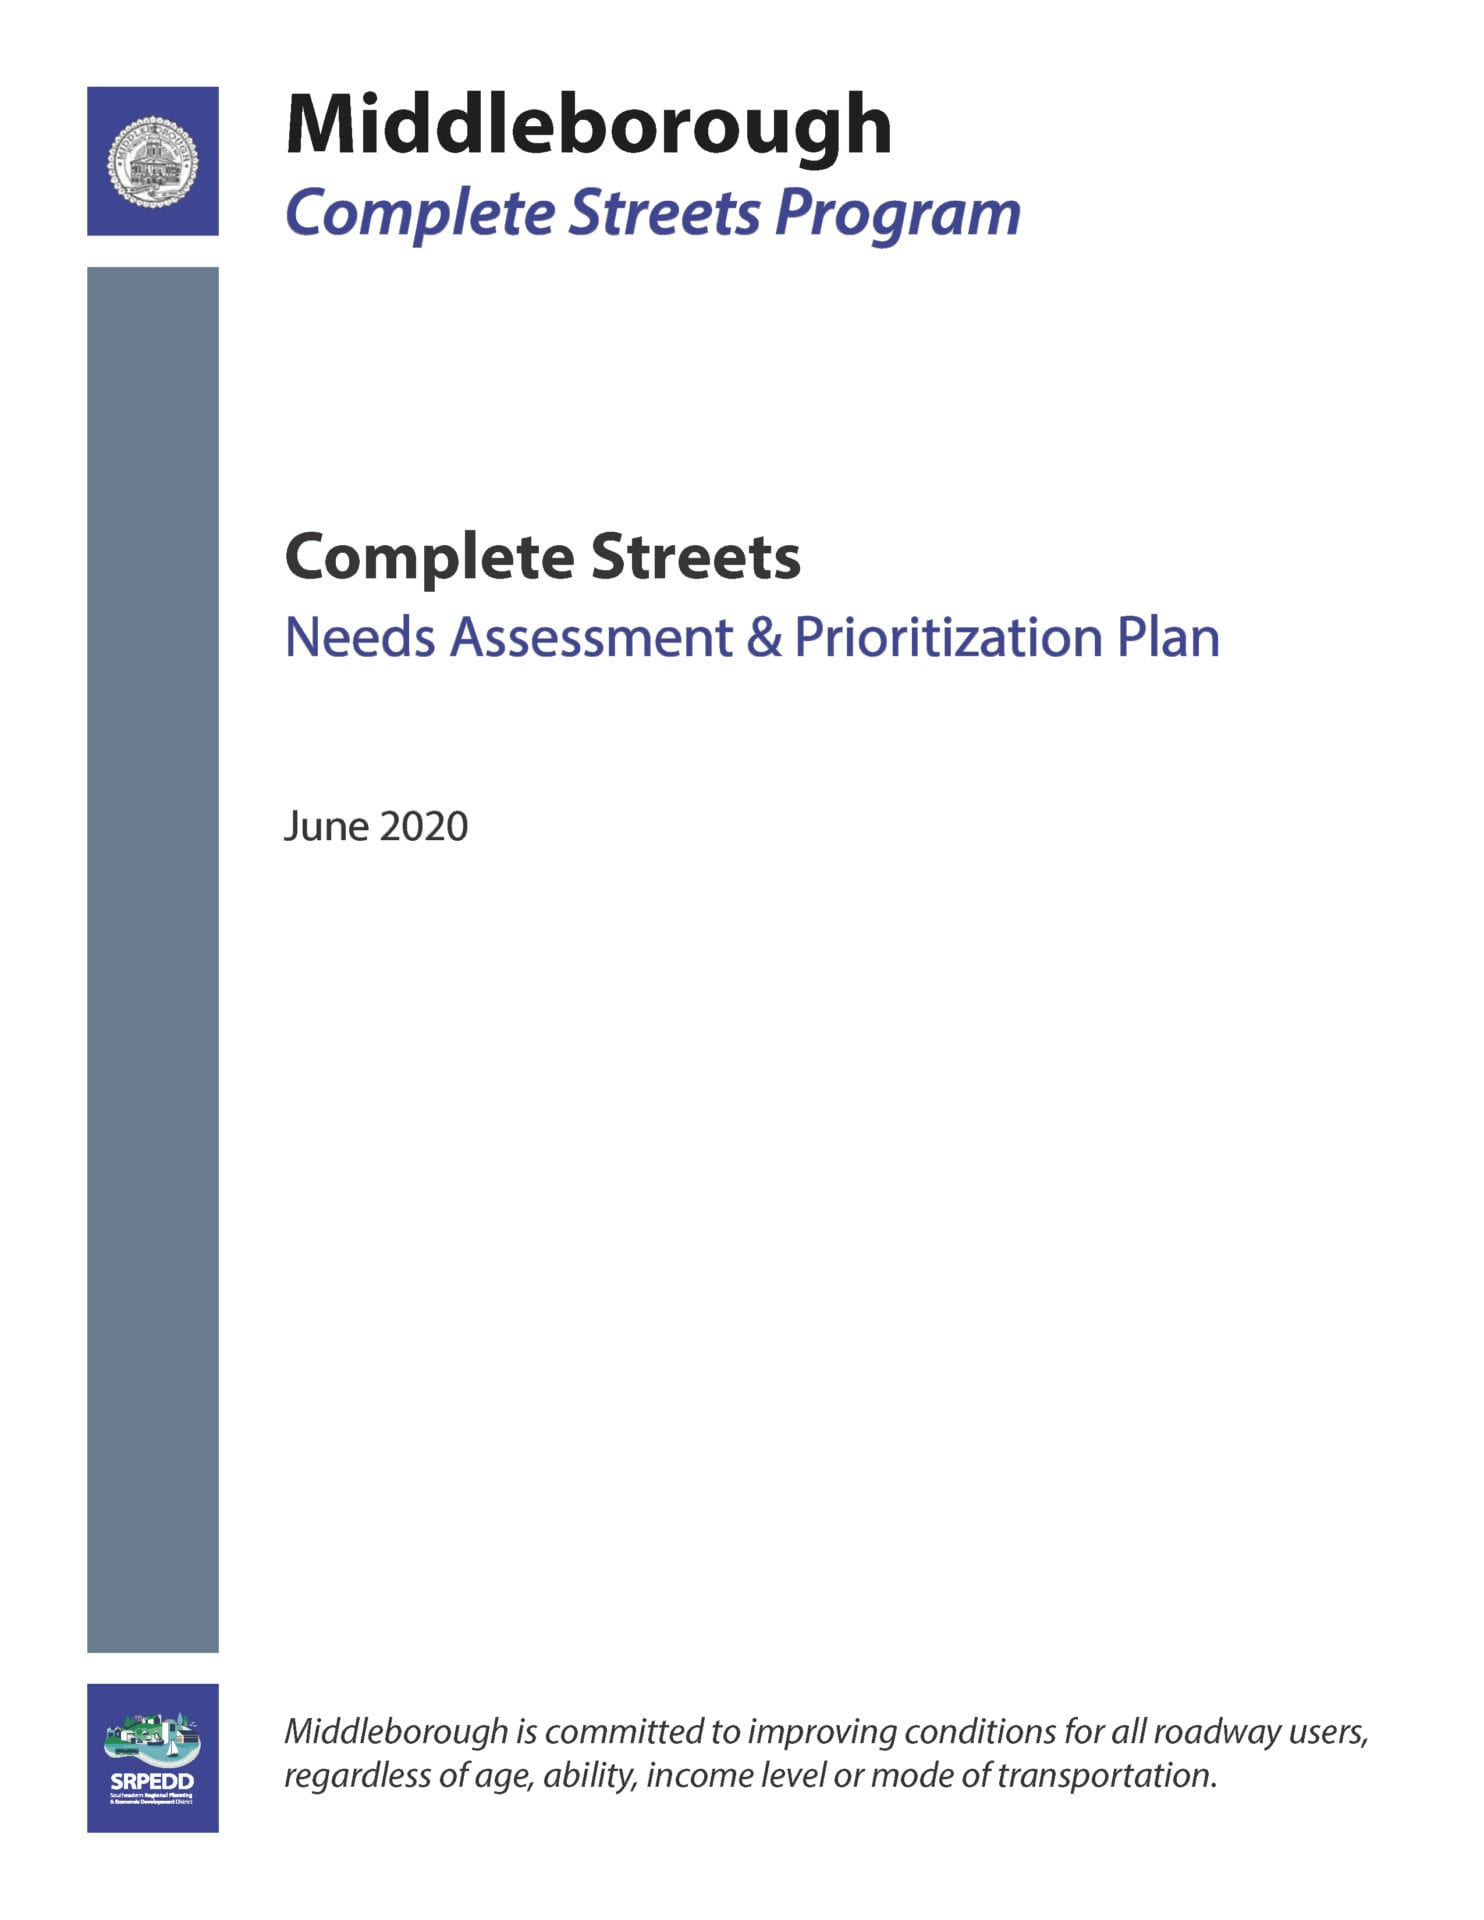 Middleborough Complete Streets Needs Assessment and Prioritization Plan